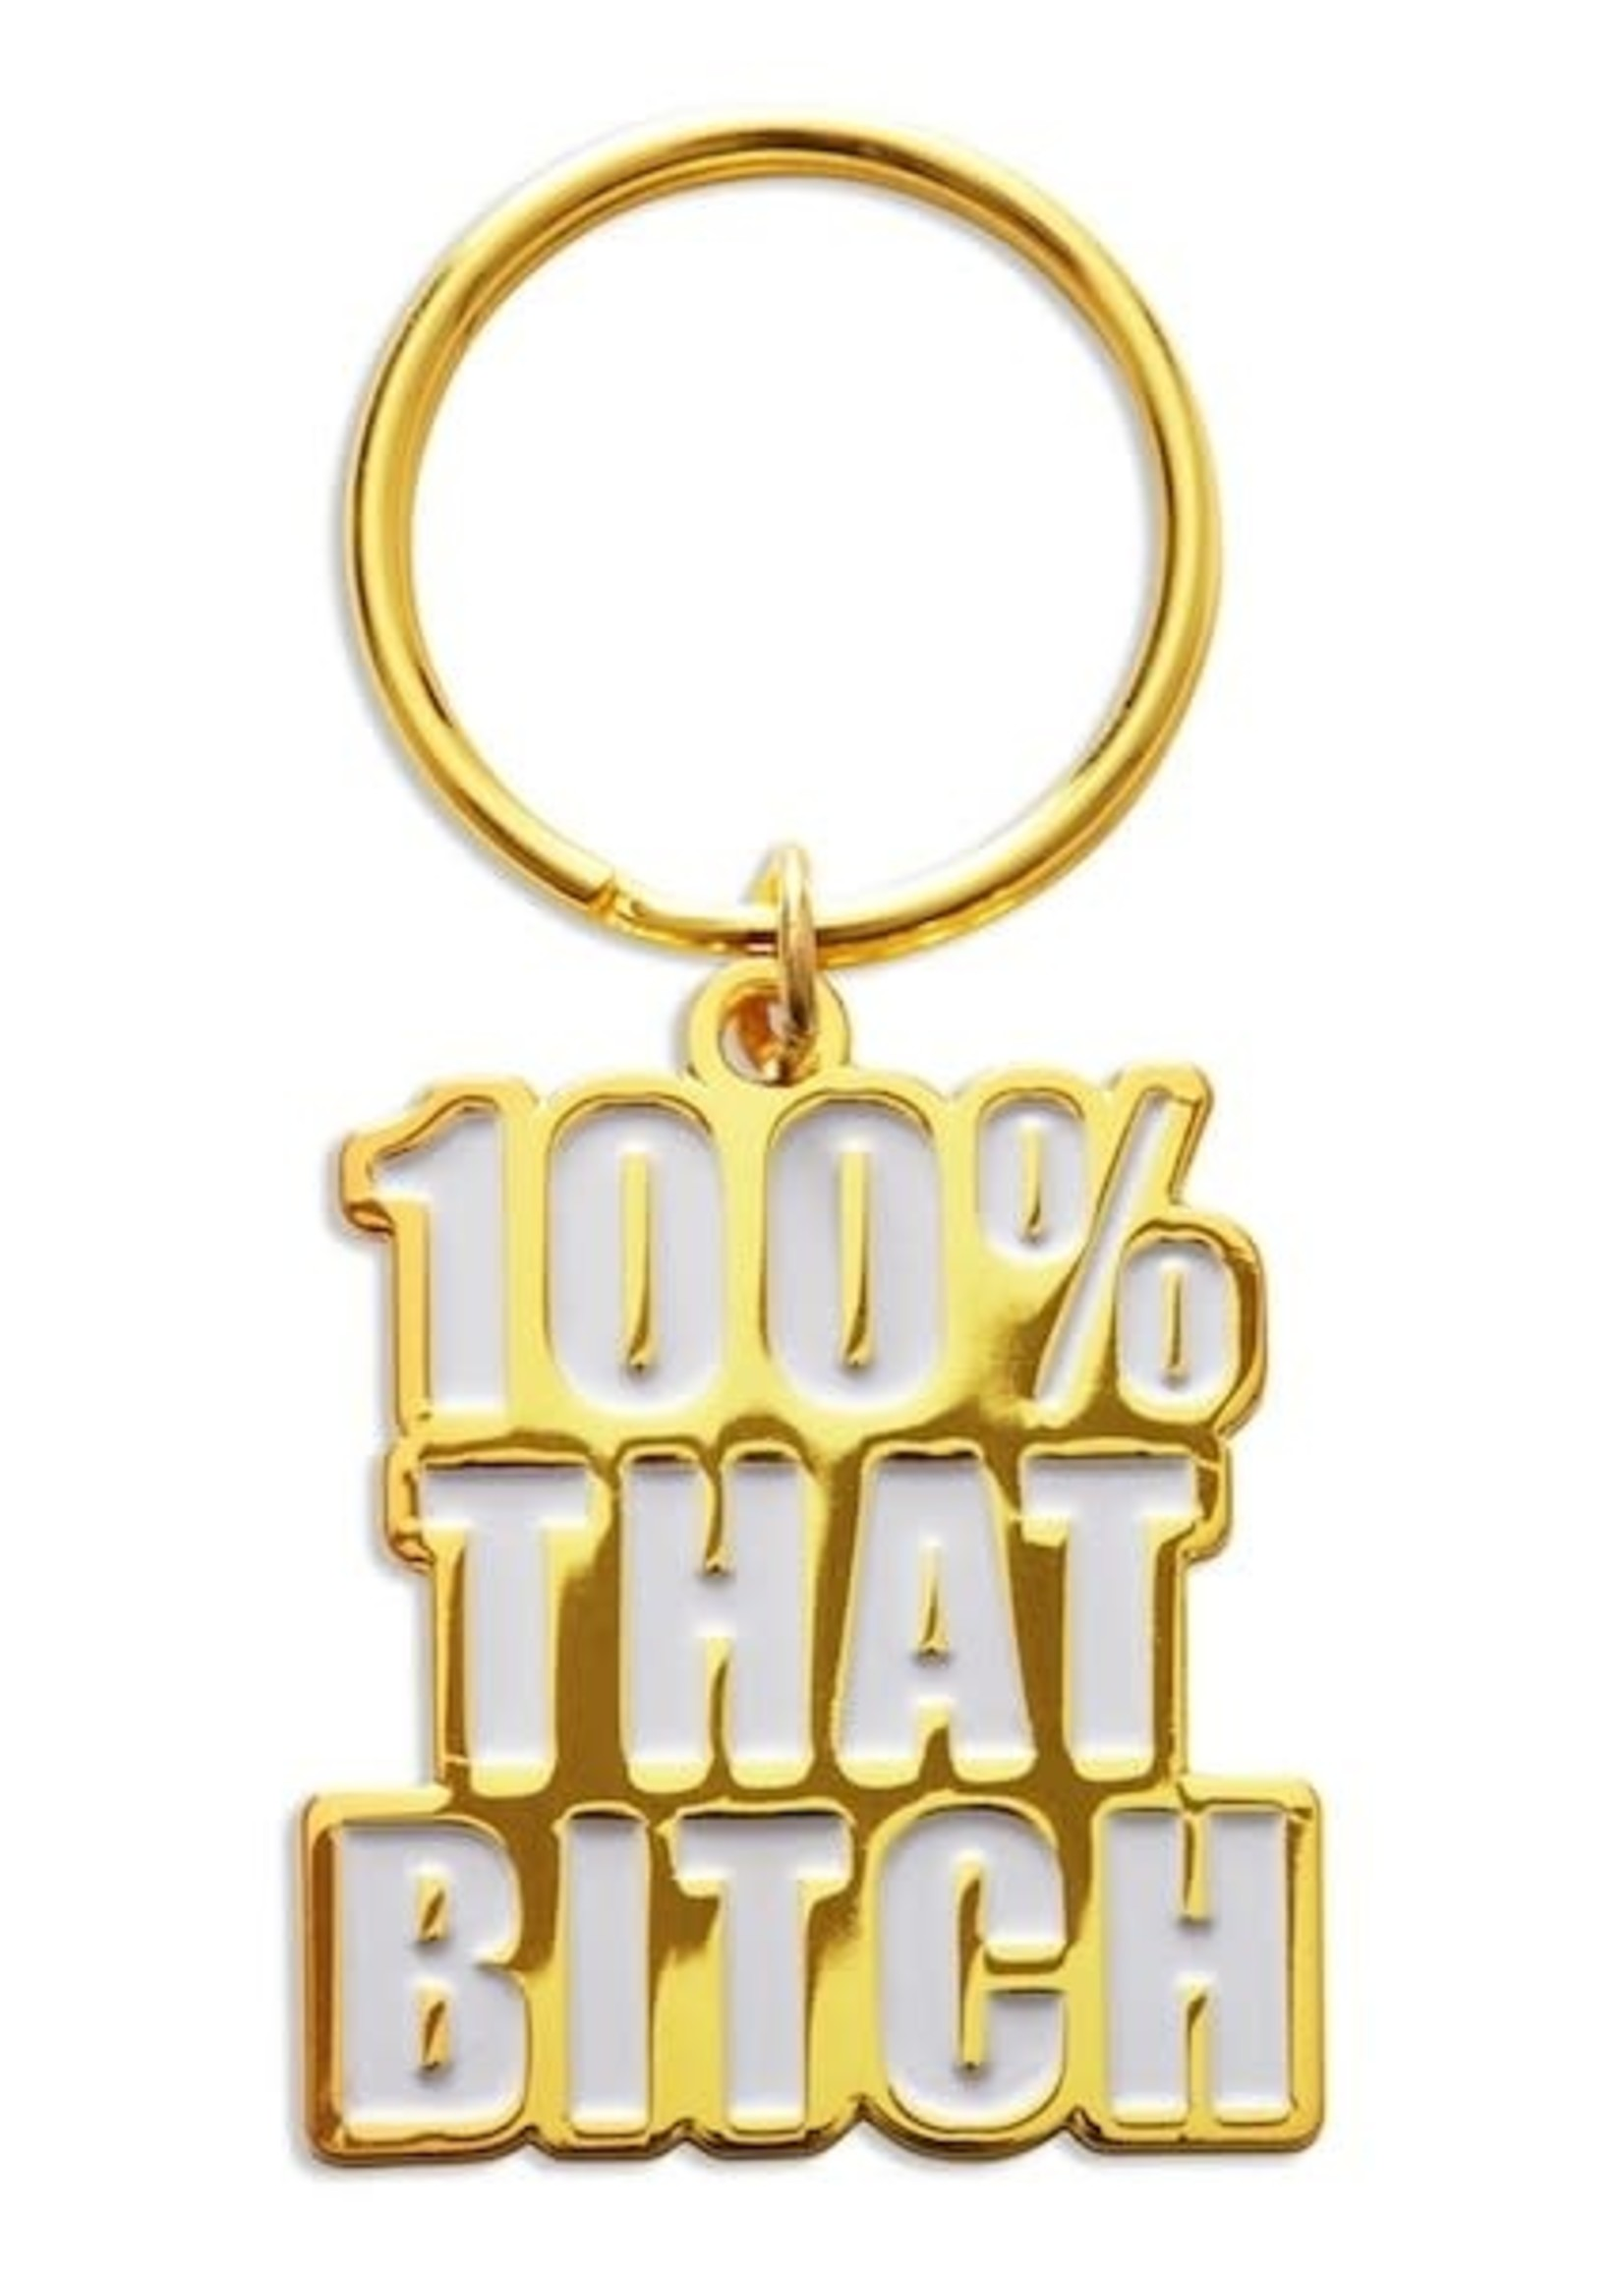 THE FOUND THE FOUND 100% THAT BITCH KEYCHAIN